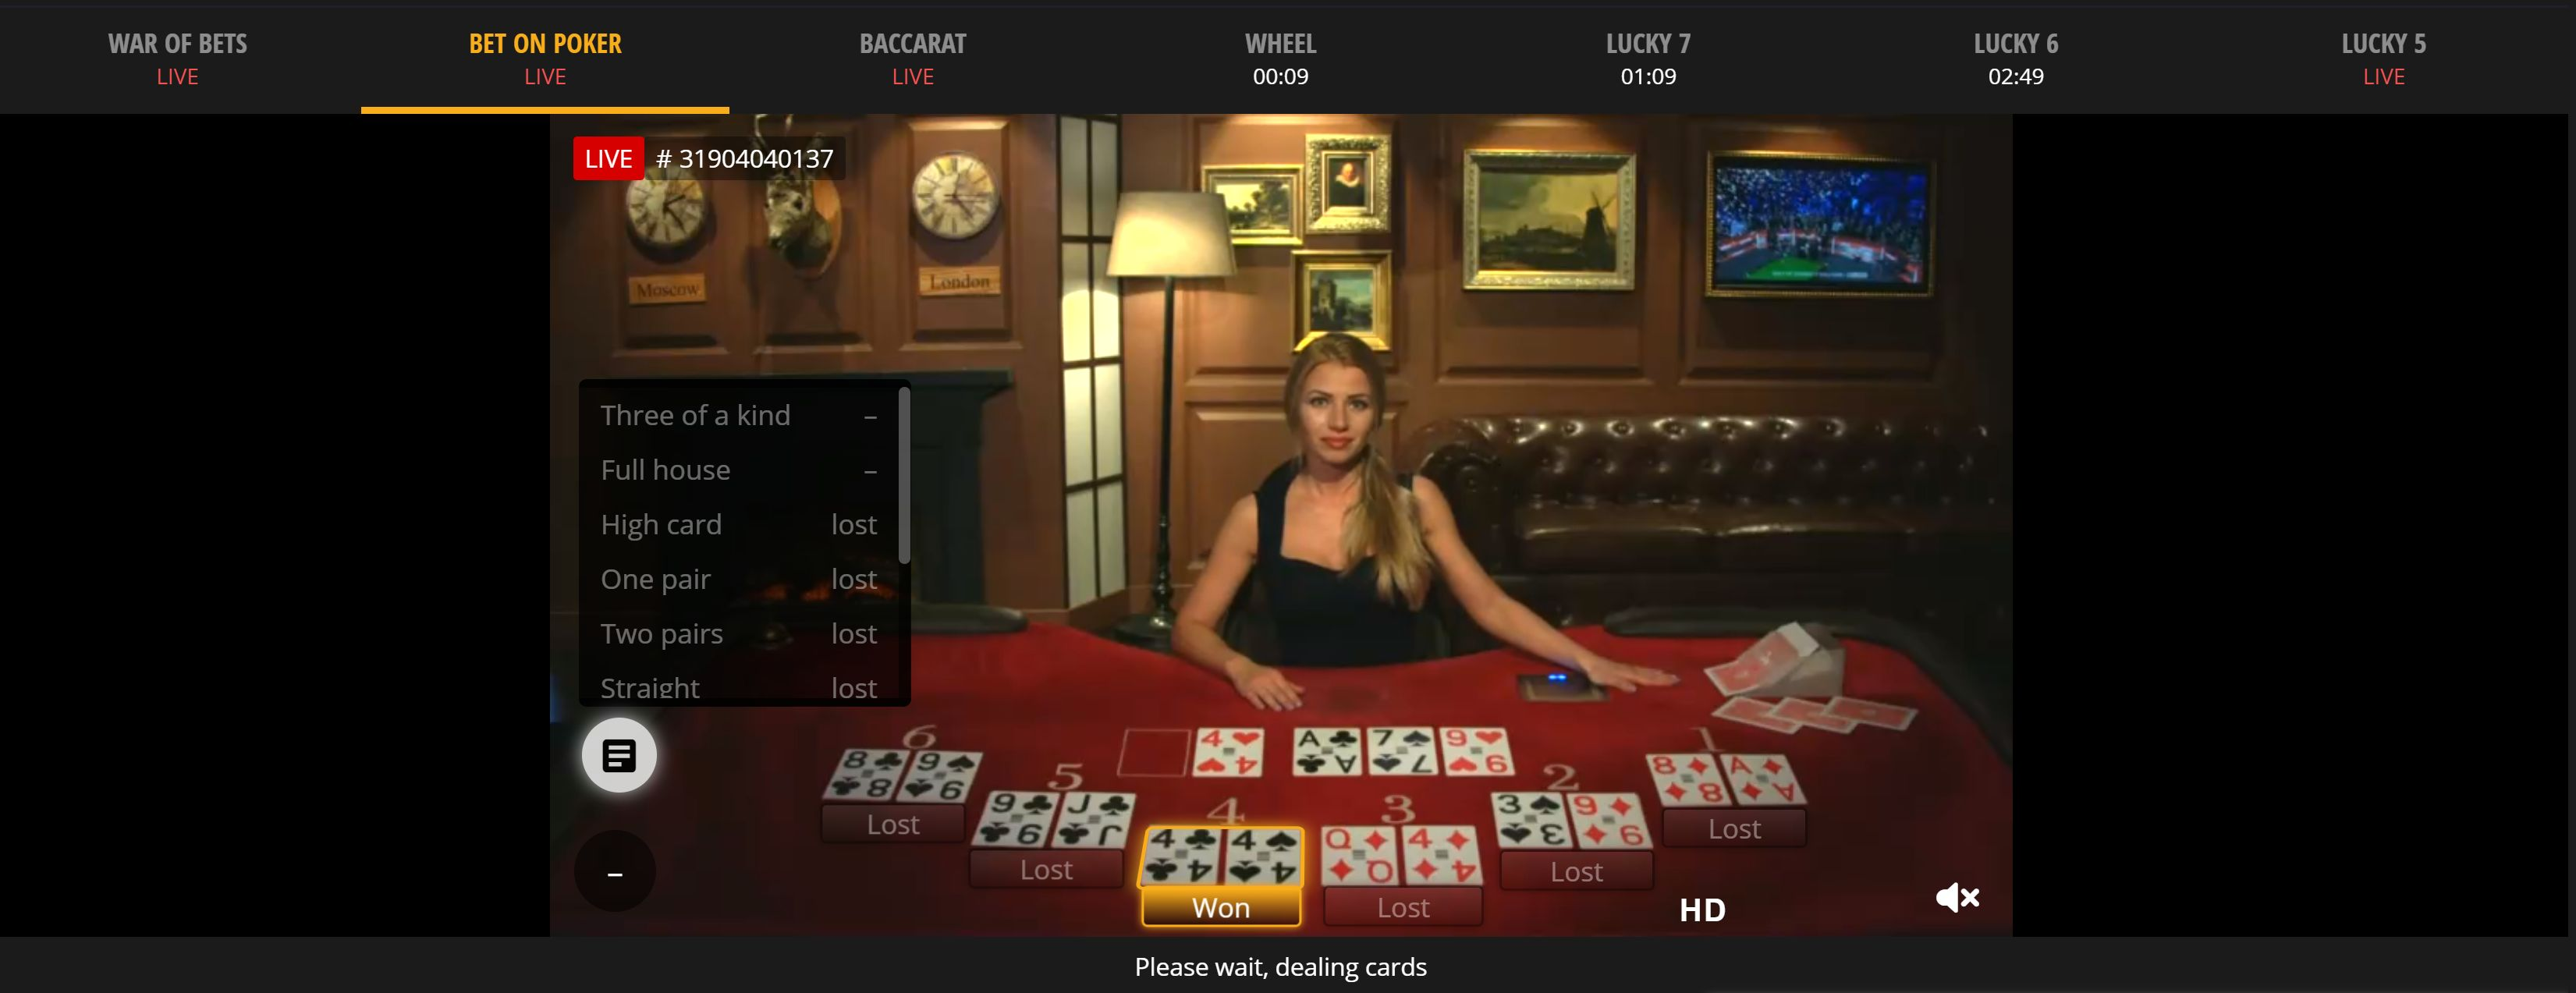 betgames tv best live casino dealer blackjack site baccarat online casino roulette online